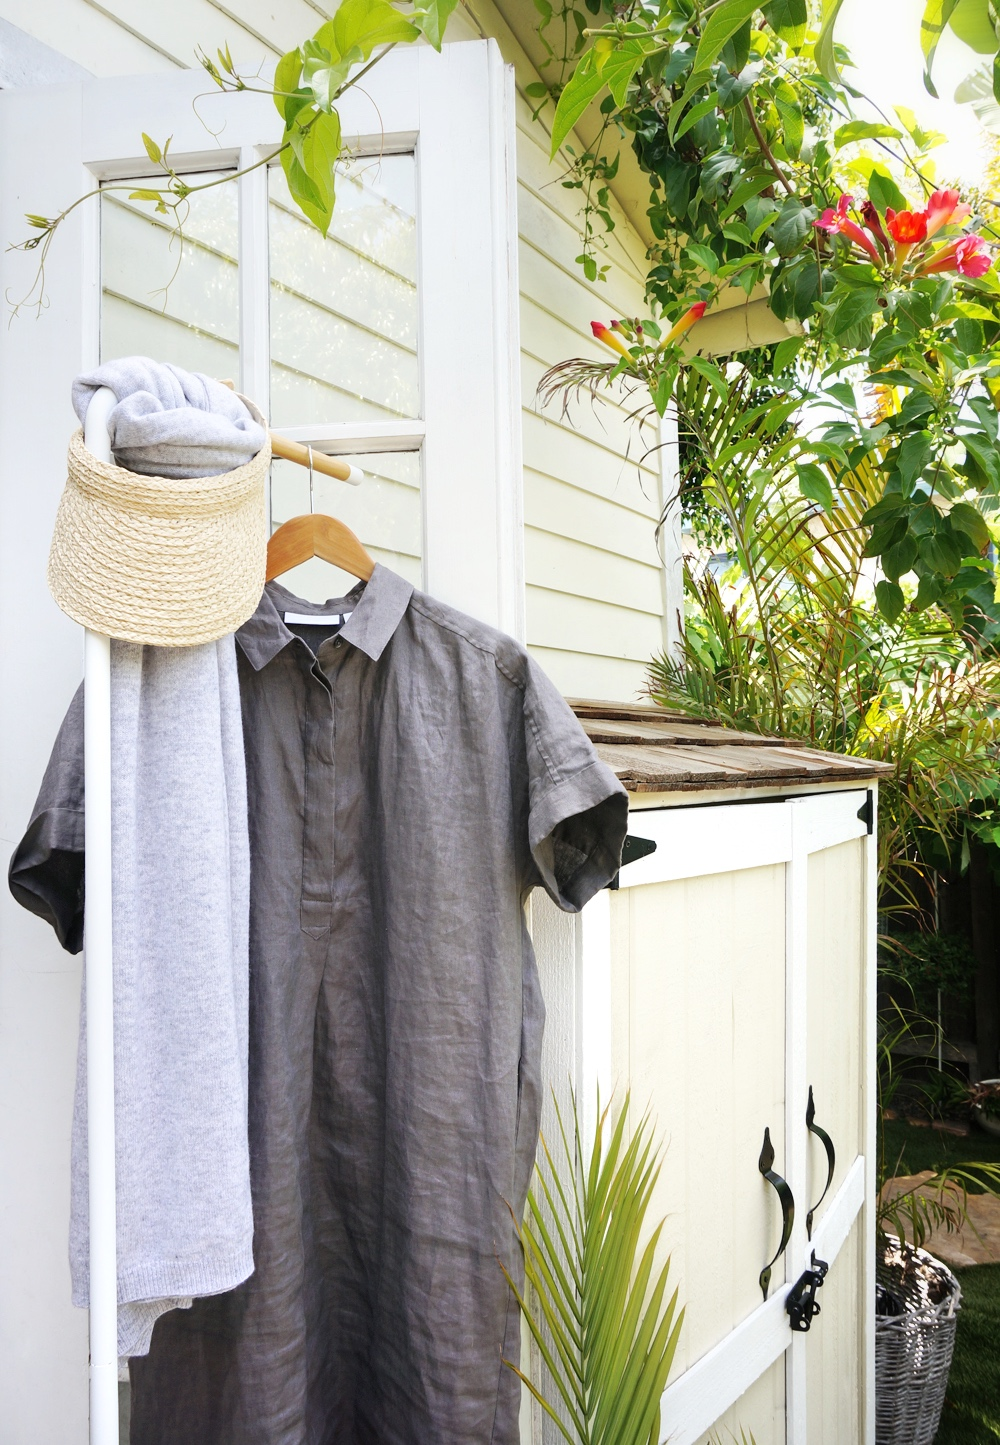 Linen Shirt Dress in Smoke  /  Straw Visor  / Cashmere Scarf (Coming soon)